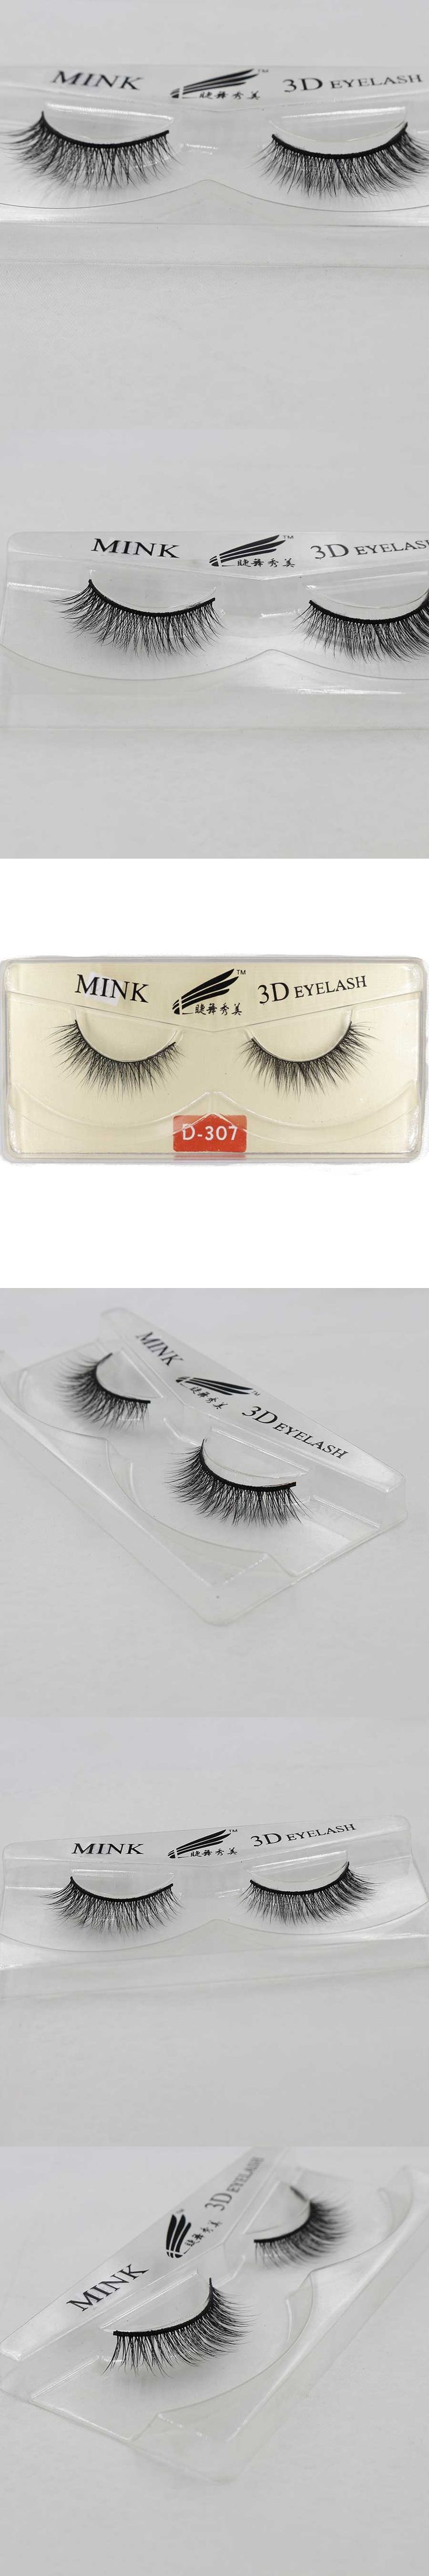 5 Pairs Natural Long 3D Mink Eyelashes Extension False Eye Lashes +Box Cilios Posticos Naturais Faux Cils Nep Wimpers D307-S5